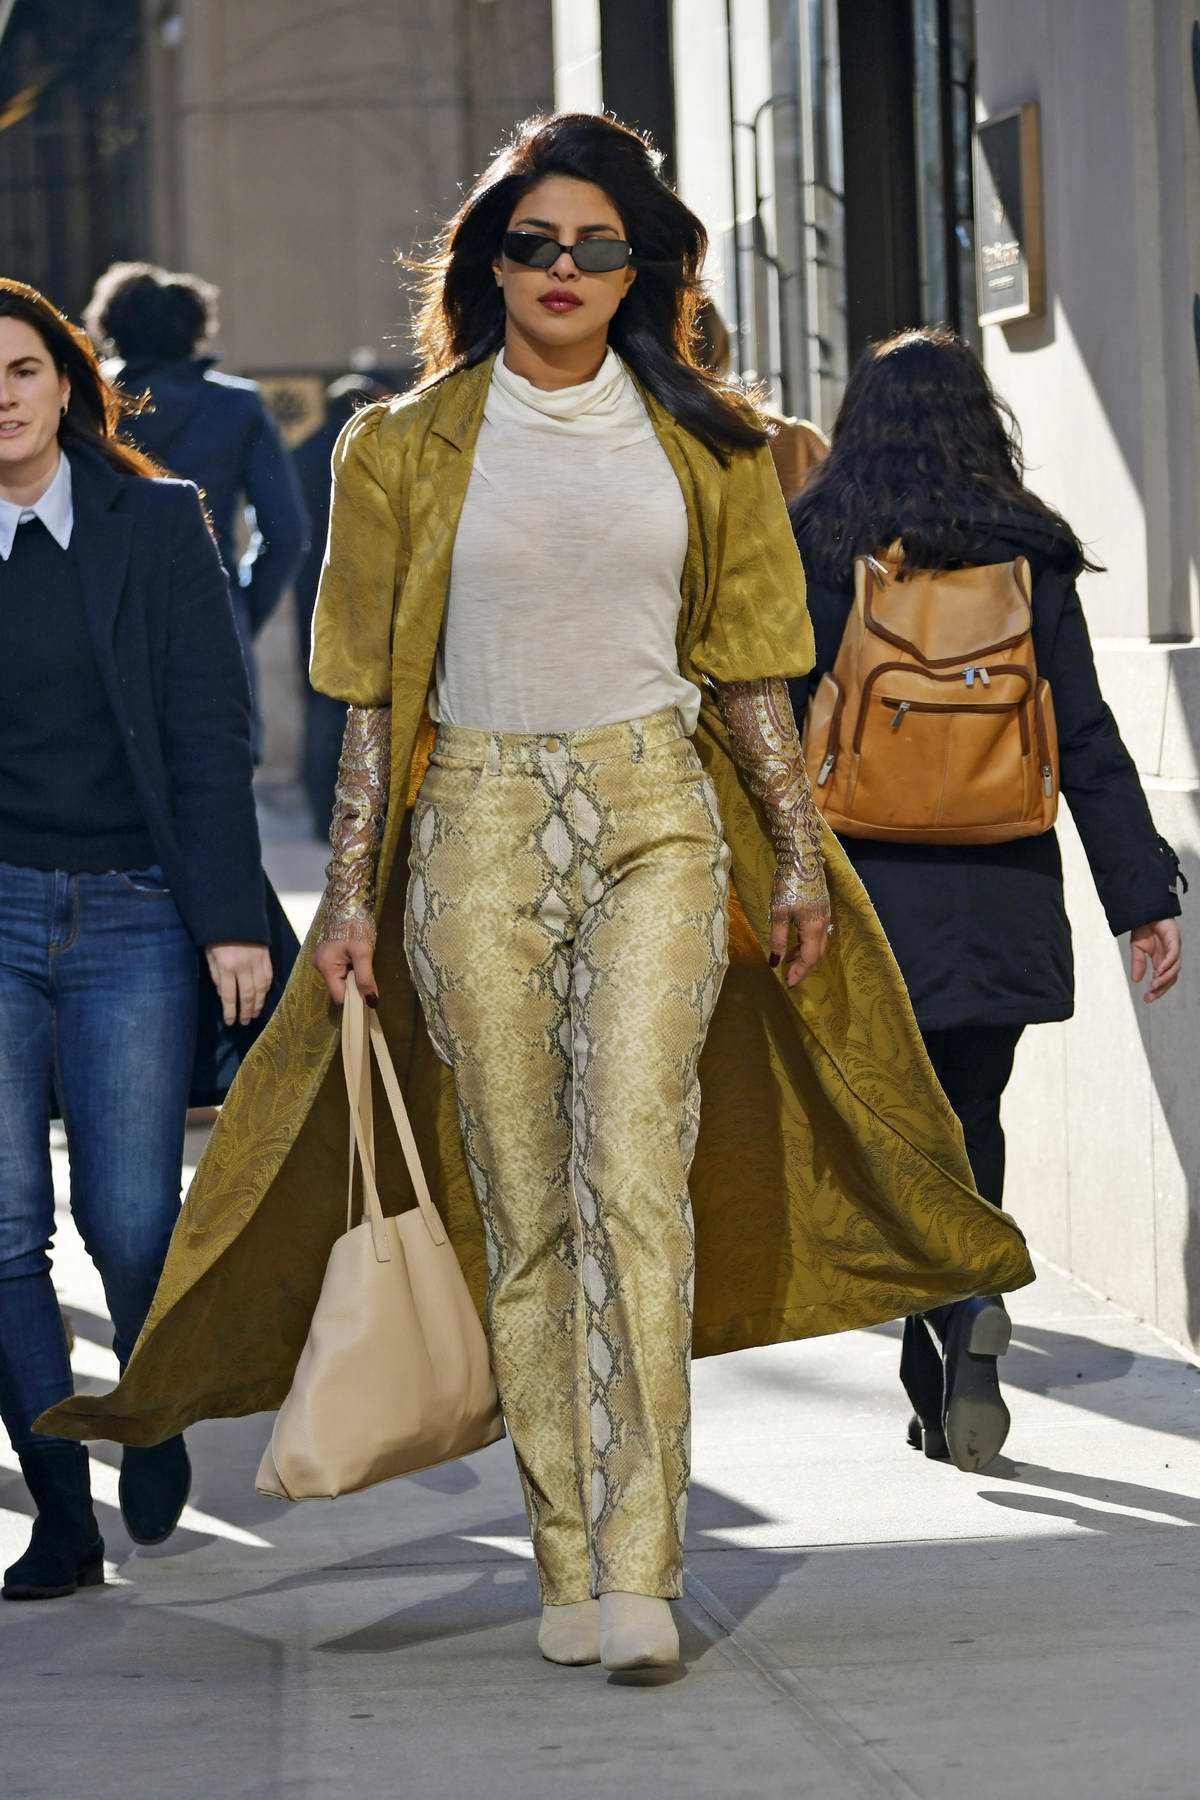 Priyanka Chopra spotted in a golden coat with a snakeskin print pants while out and about in New York City